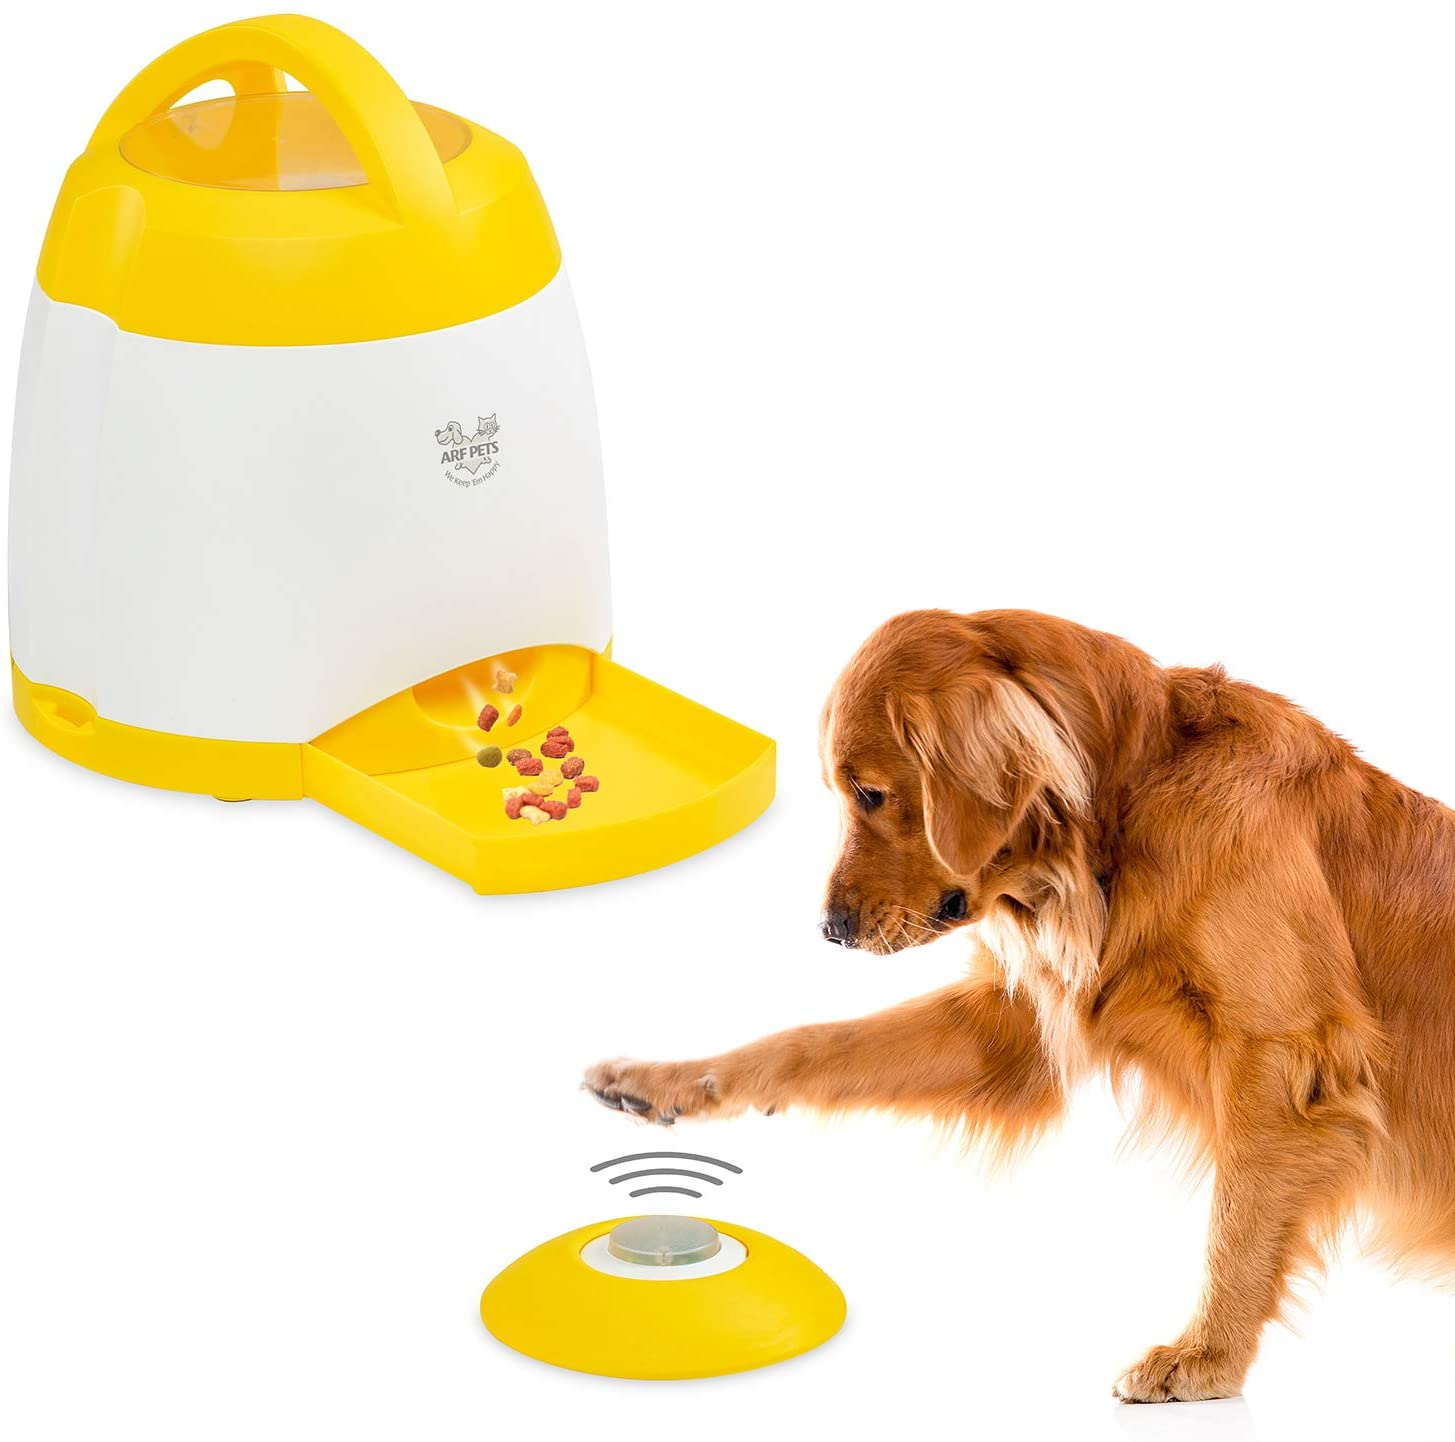 Arf Pets Dog Treat Dispenser – Dog Puzzle Memory Training Activity Toy – Treat While Train, Promotes Exercise by Rewarding Your Pet, Cat, Improves Memory & Positive Training for A Healthier & Happier